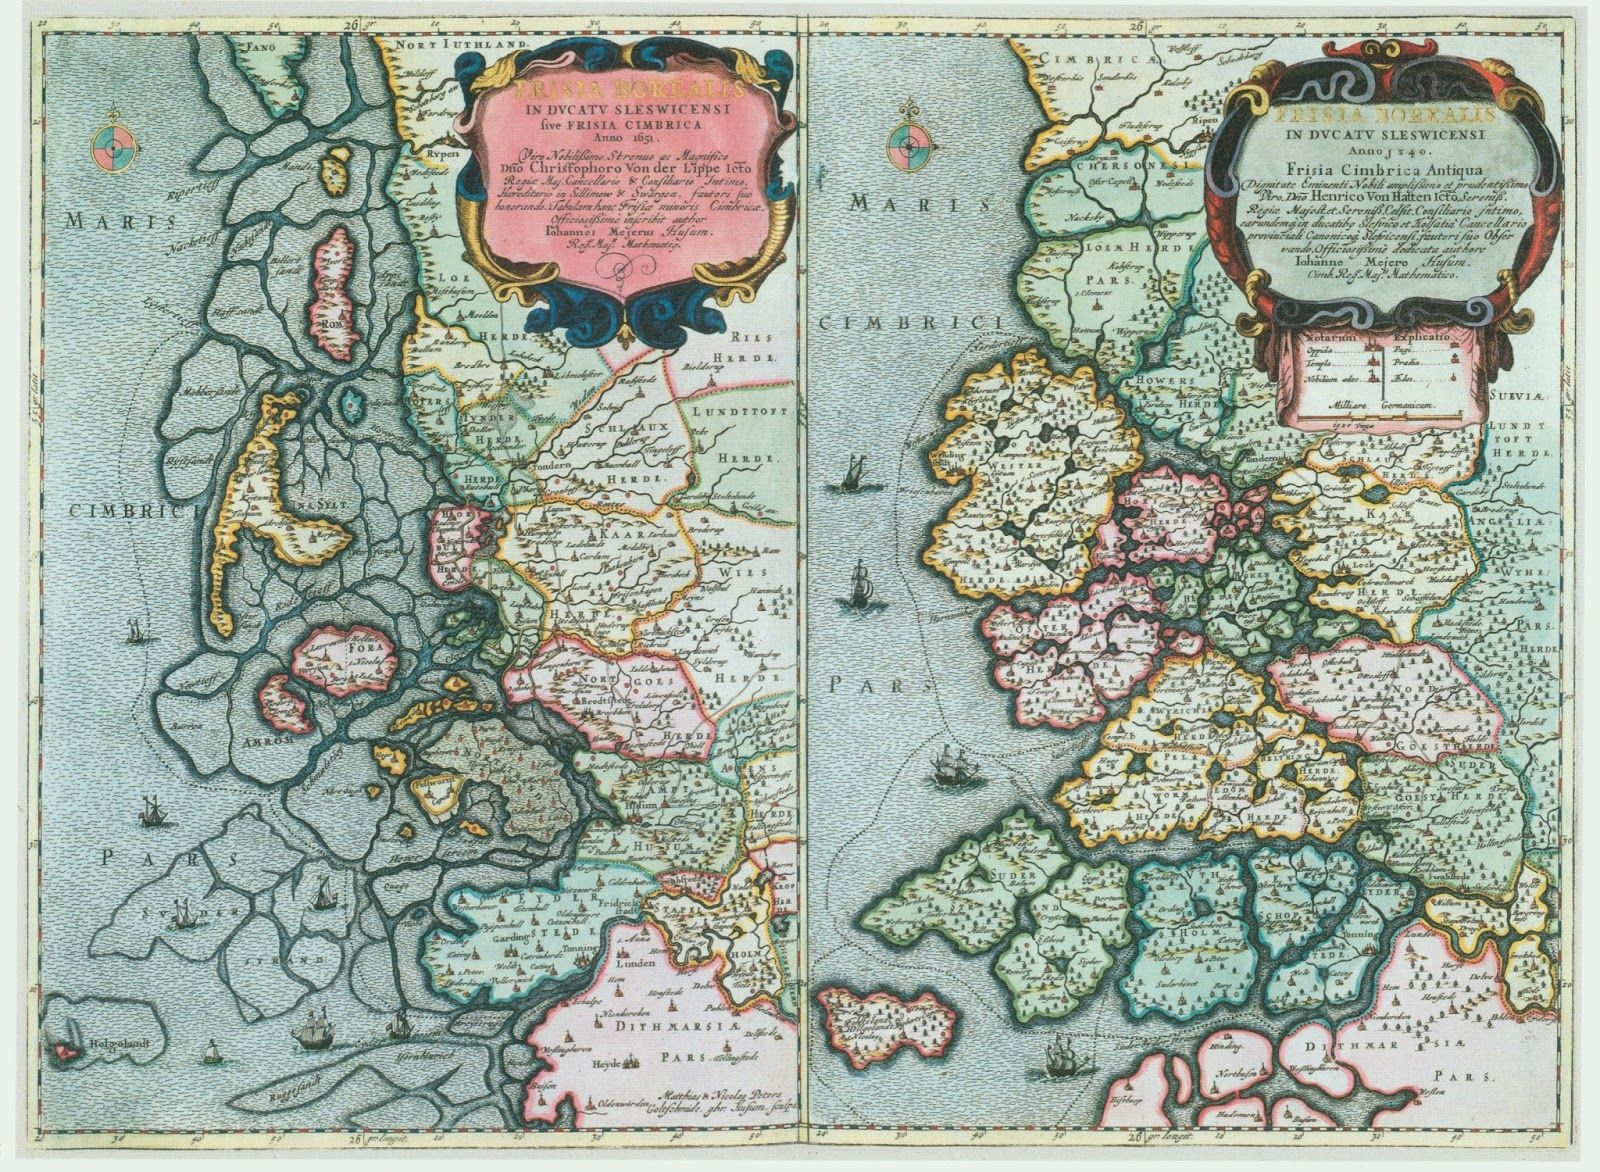 North Frisian coast Netherlands in 1651 an